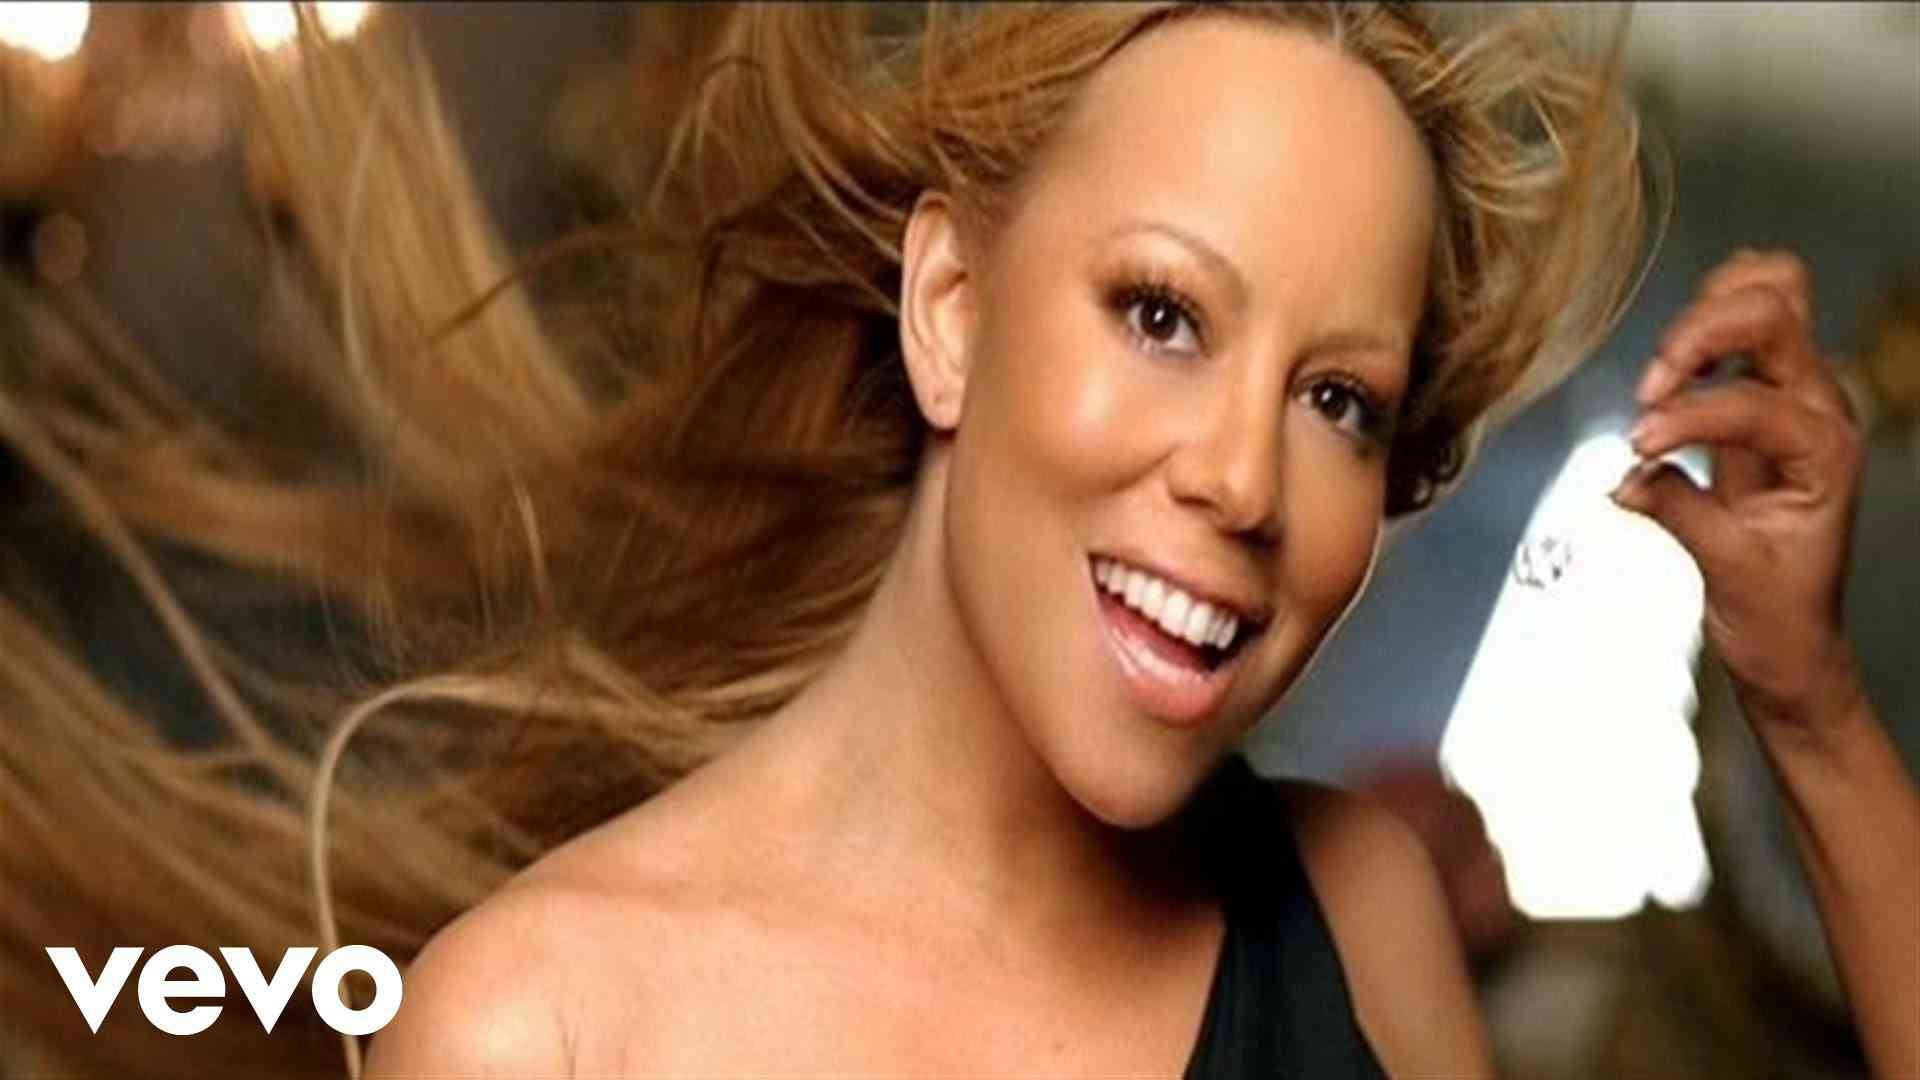 Mariah Carey, Fatman Scoop, Jermaine Dupri - It's Like That - YouTube